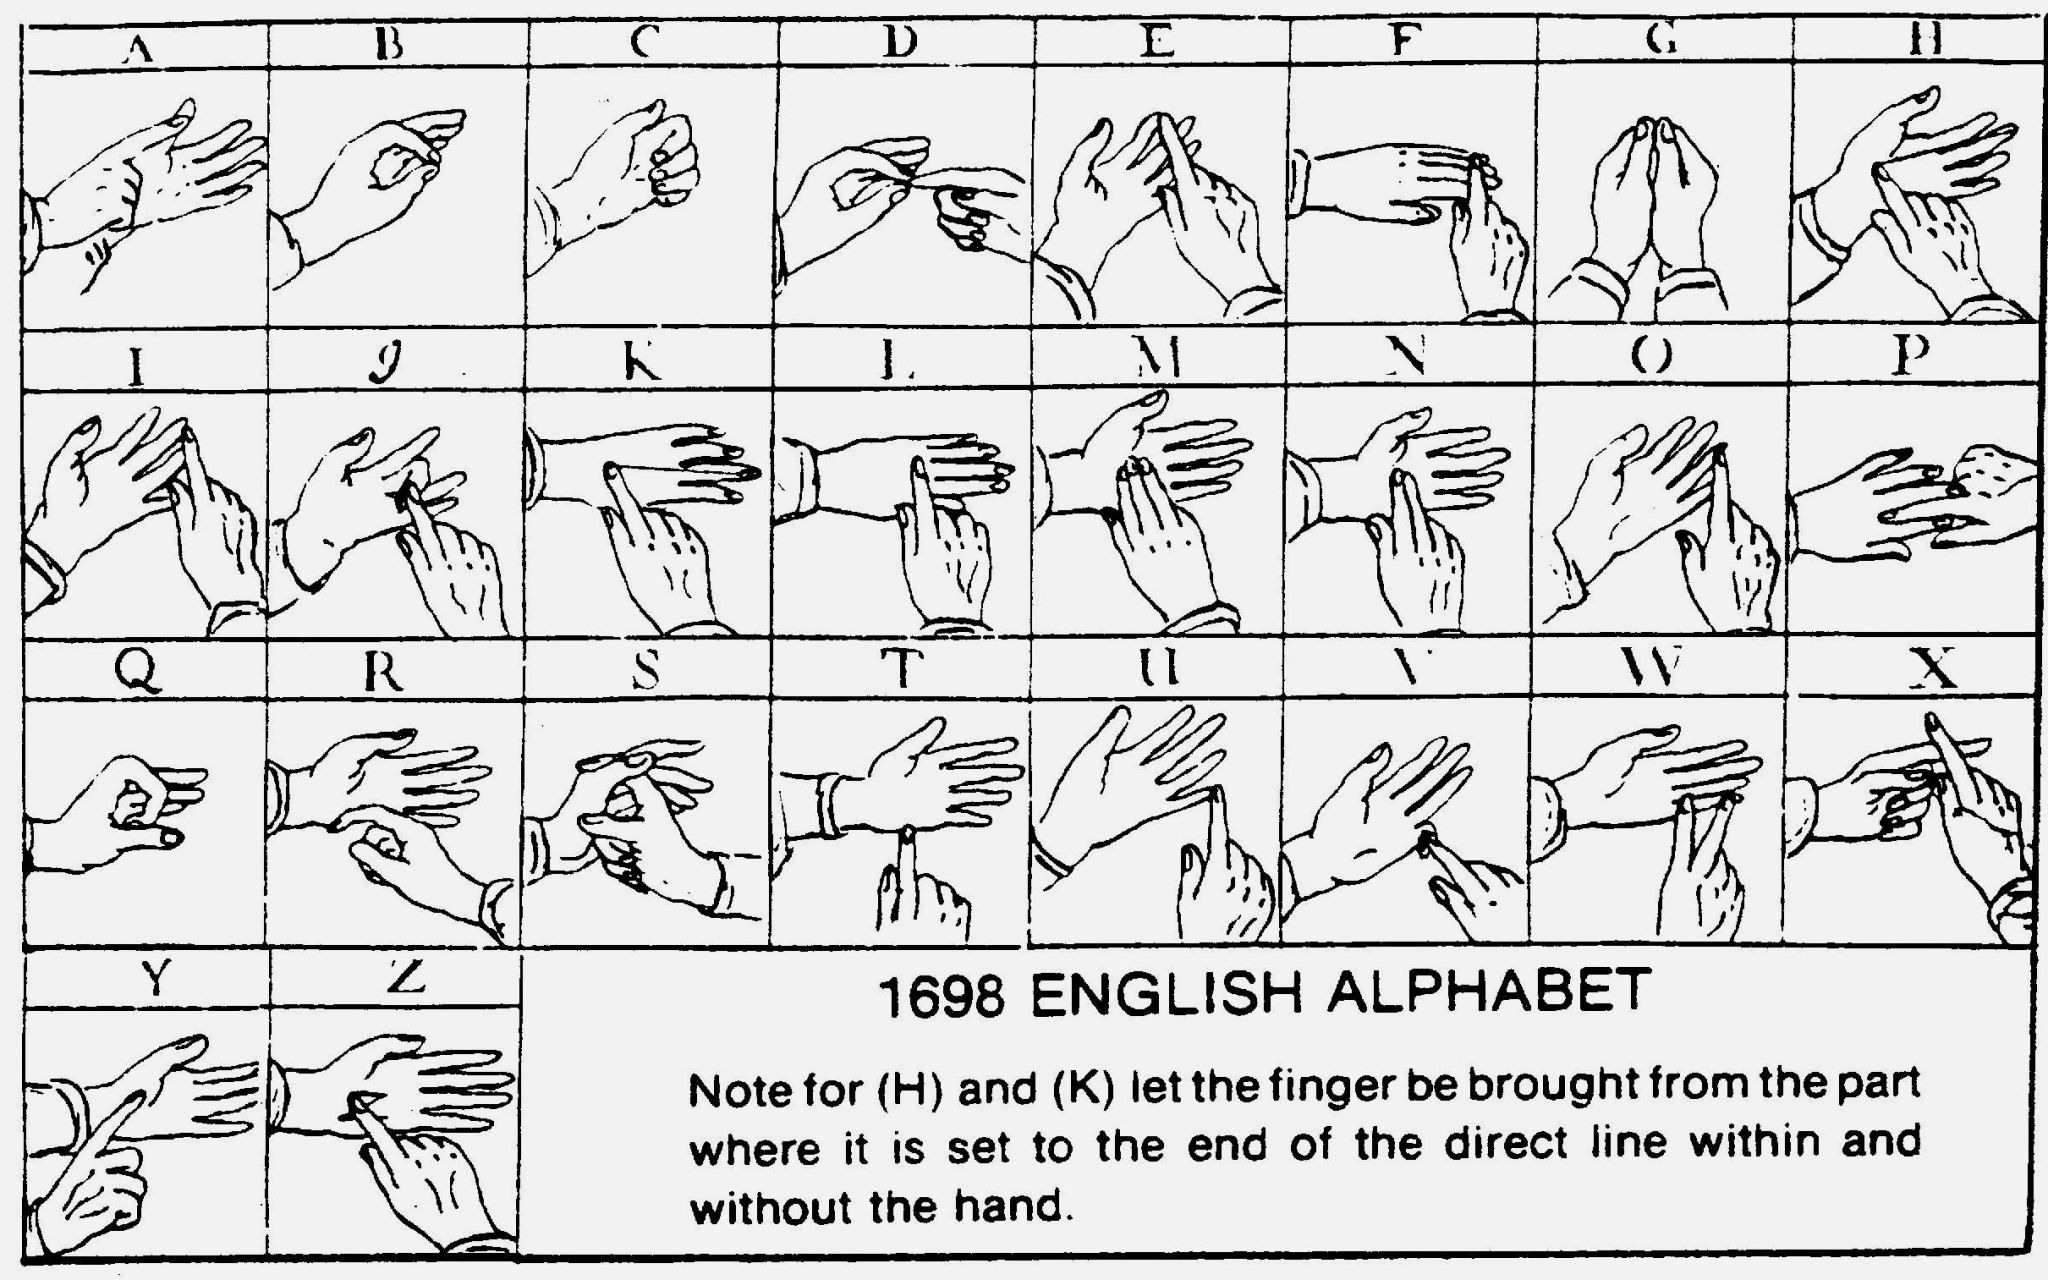 Fingerspelling Practice Worksheets Awesome Fingerspelling Practice Worksheets